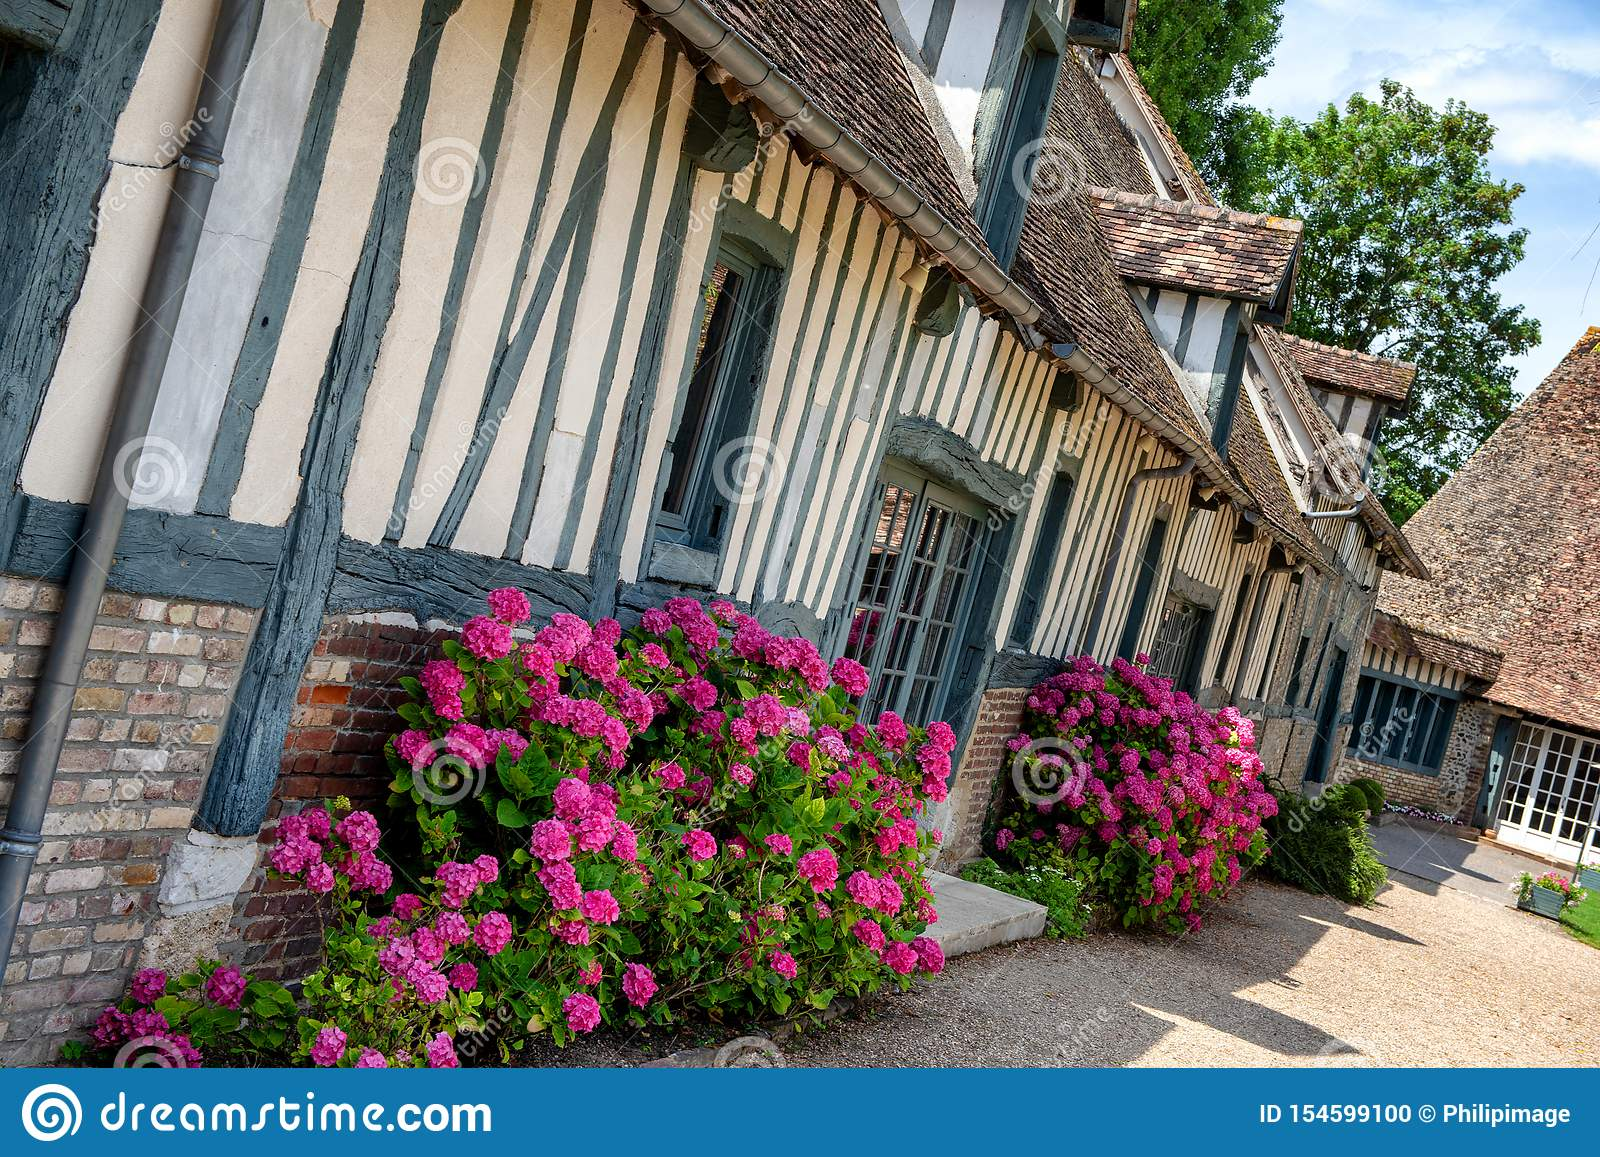 Normandy French House View Of A Typical French Normand House Stock Photo Image Of Flowers Normandy 154599100